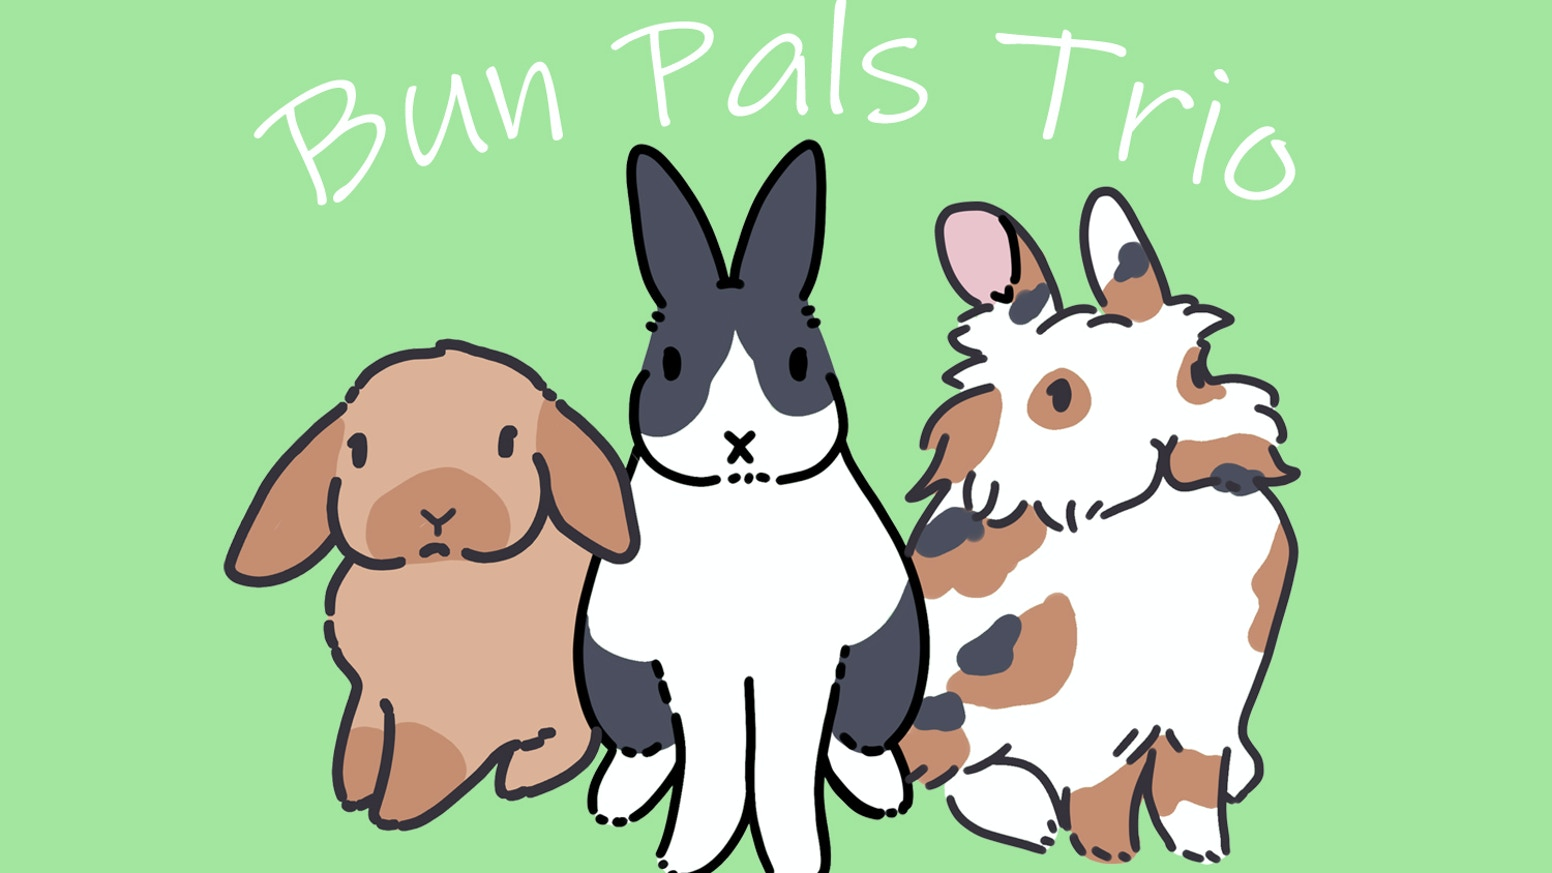 With this Kickstarter's success we will bring this adorable bun pal trio to life!